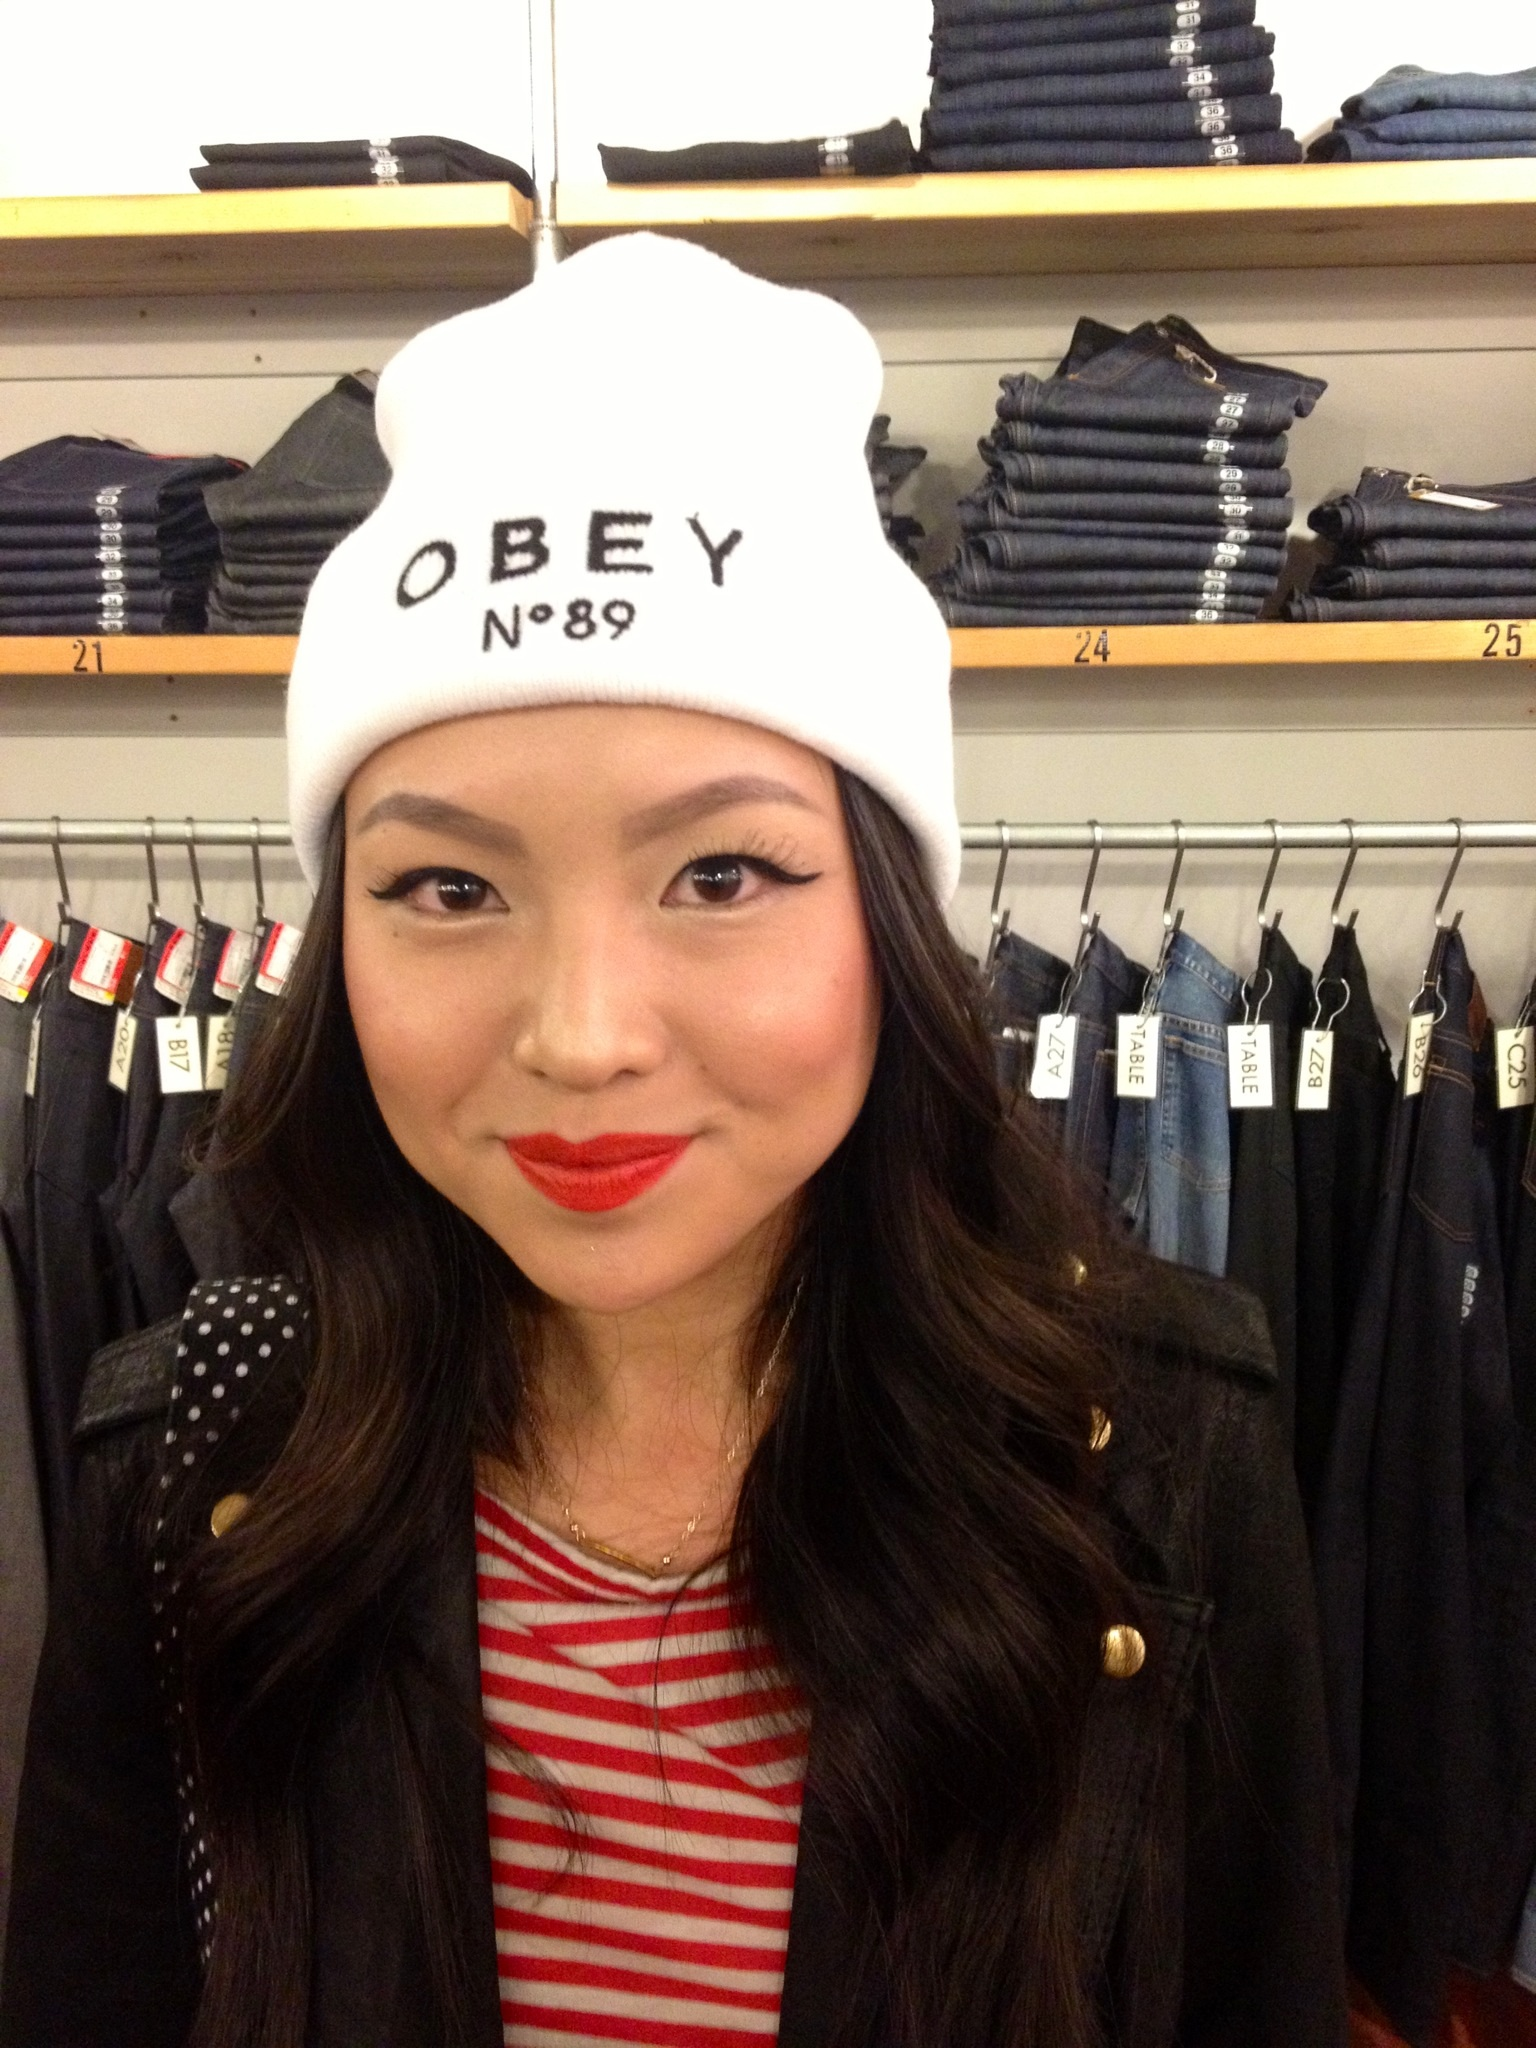 A guest sporting an OBEY beanie at the event.